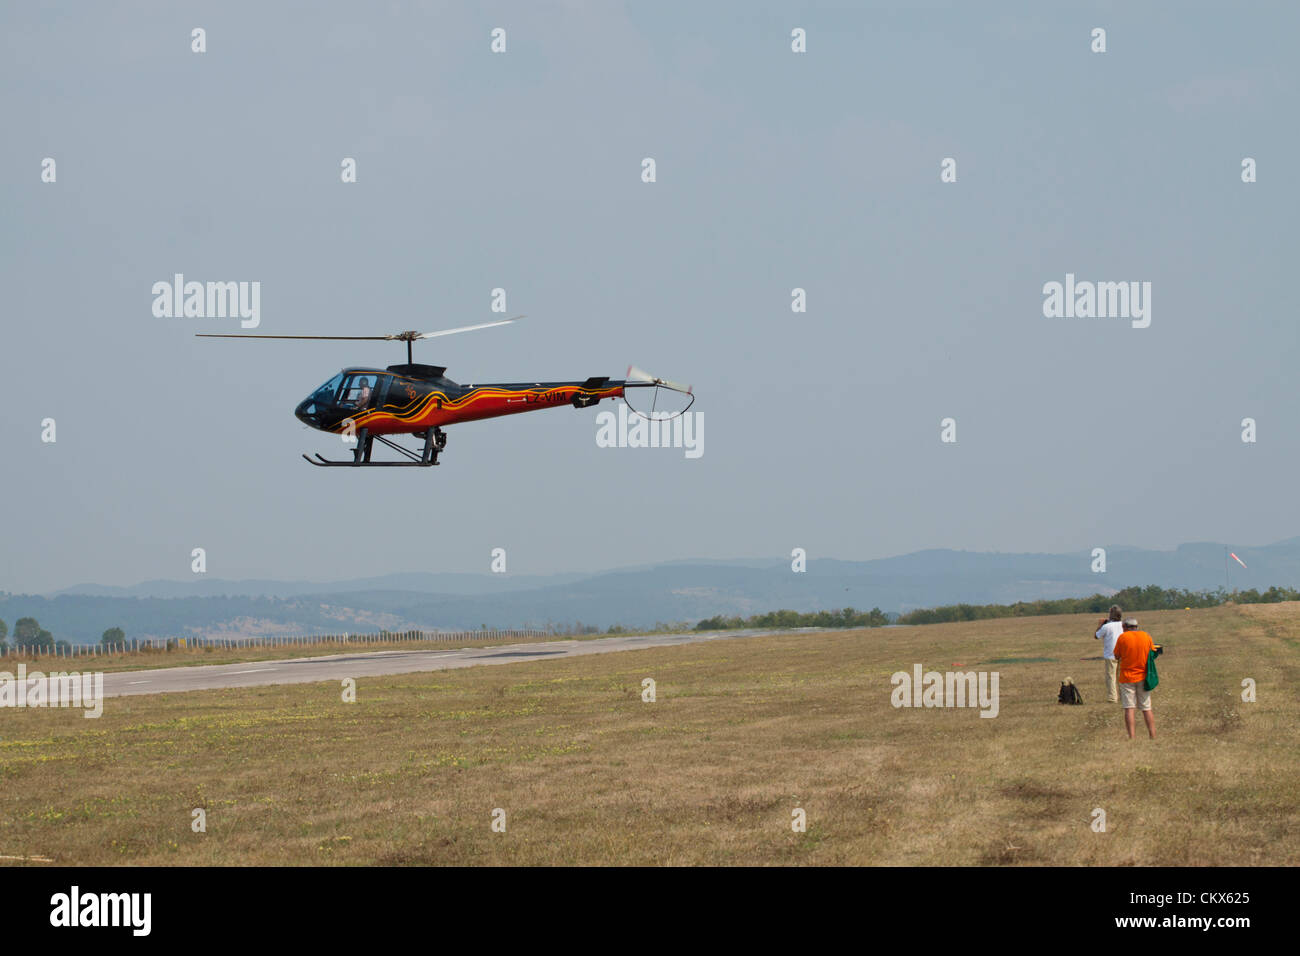 Lesnovo, Bulgaria; 24th Aug 2012. The Enstrom 480 flying sideways over the runway at Lesnovo, giving a perfect show - Stock Image